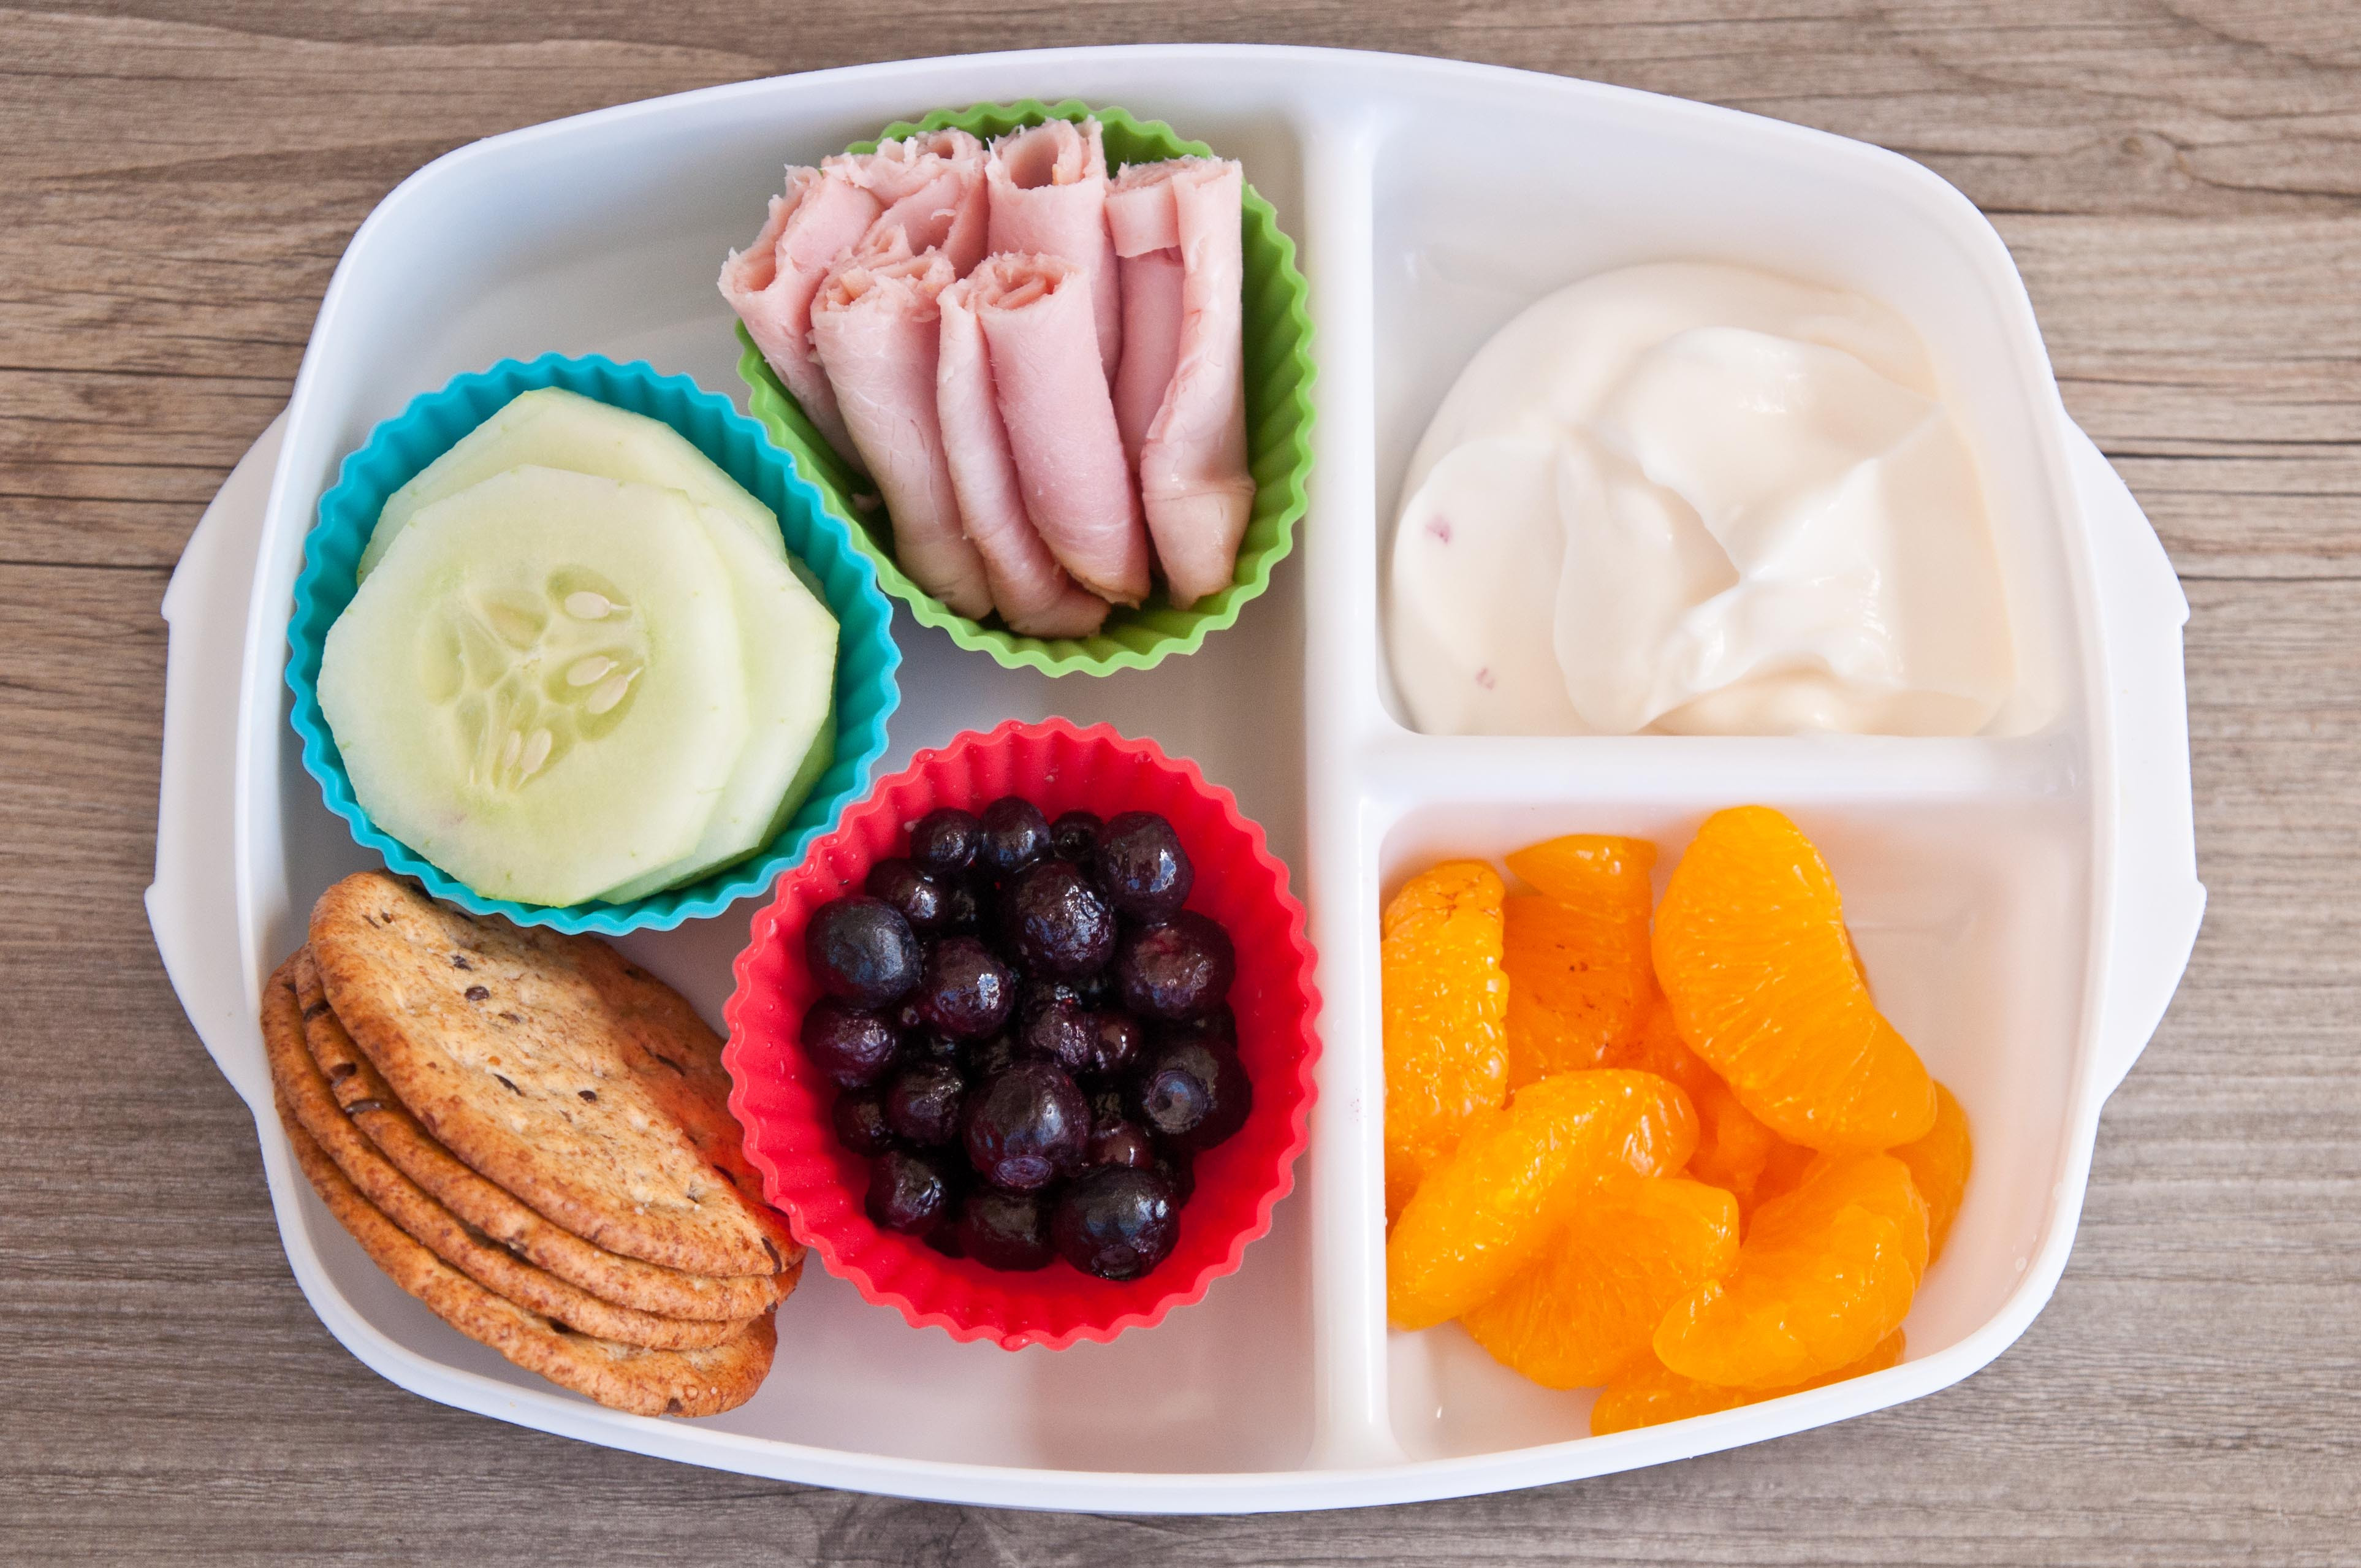 Healthy Packed Lunches For School  School Lunch Versus Packed Lunch Interesting Research and